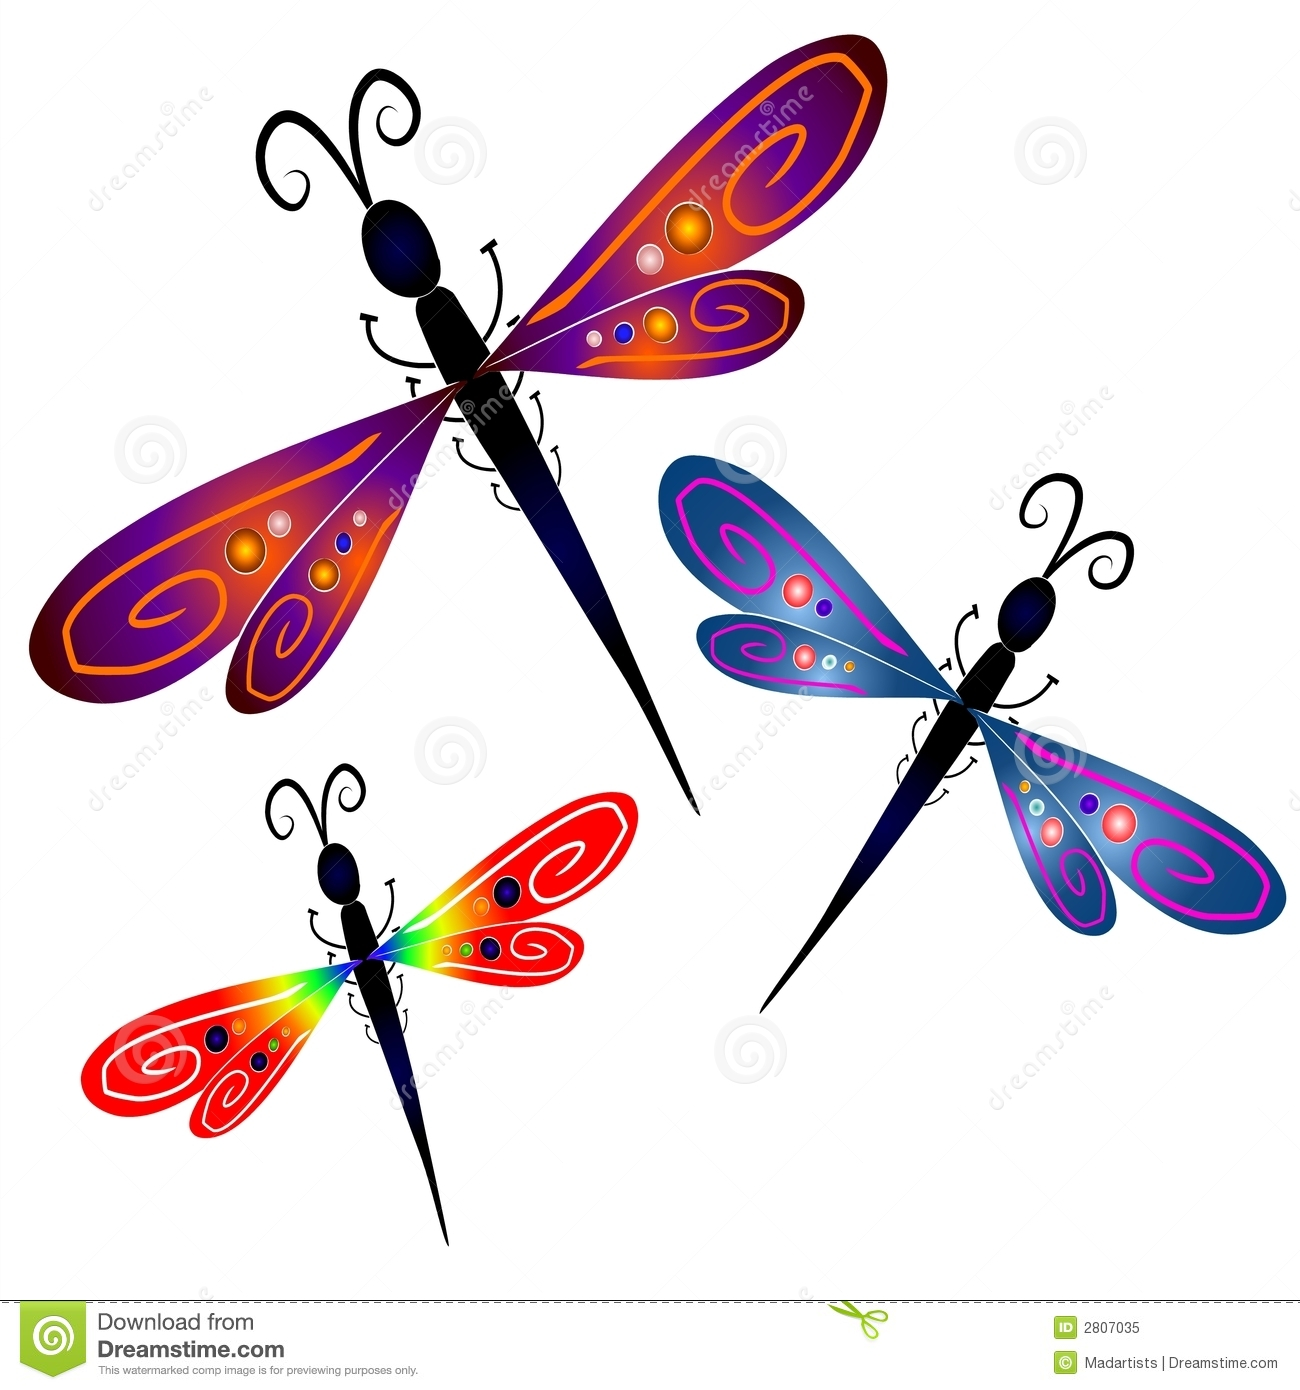 abstract dragonfly clip art stock illustration illustration of rh dreamstime com royalty free clipart images for teachers are clip art pictures royalty free